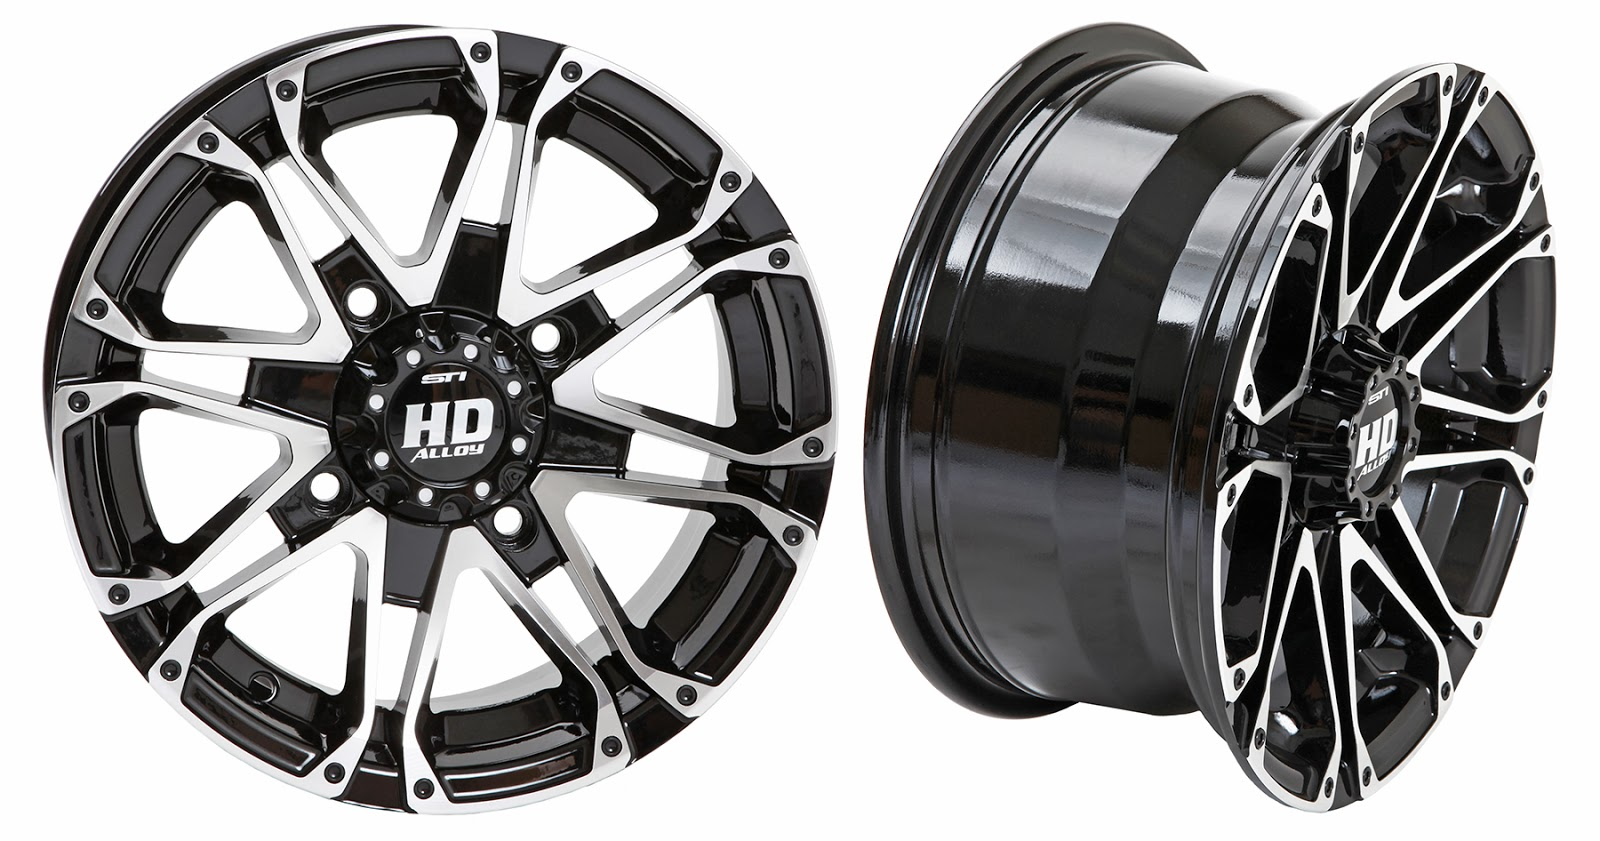 "HD3 ""50-Inch Trail Legal"" wheel"